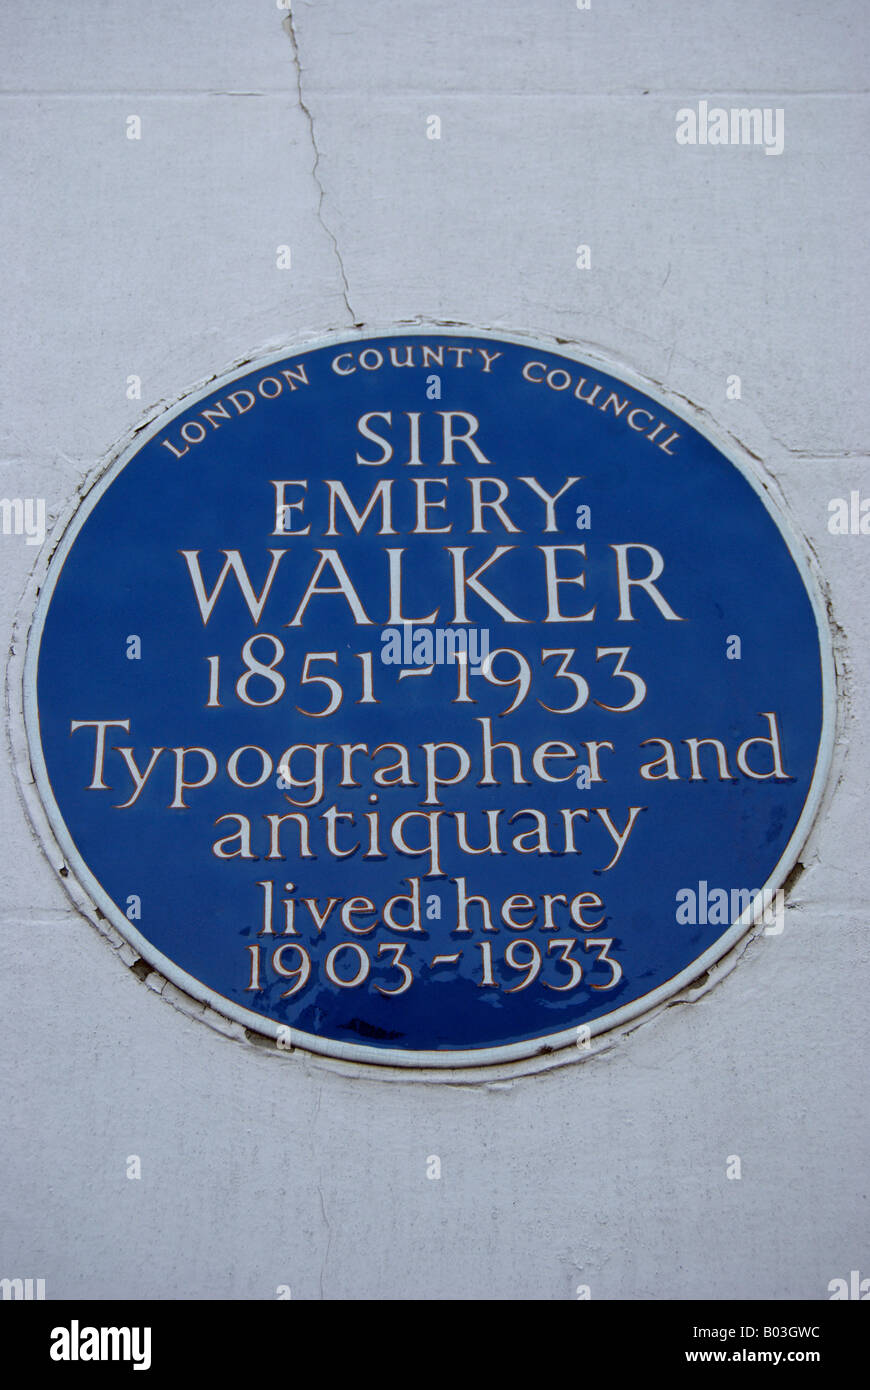 london county council blue plaque marking a former home of sir emery walker, in hammersmith terrace, west london, - Stock Image